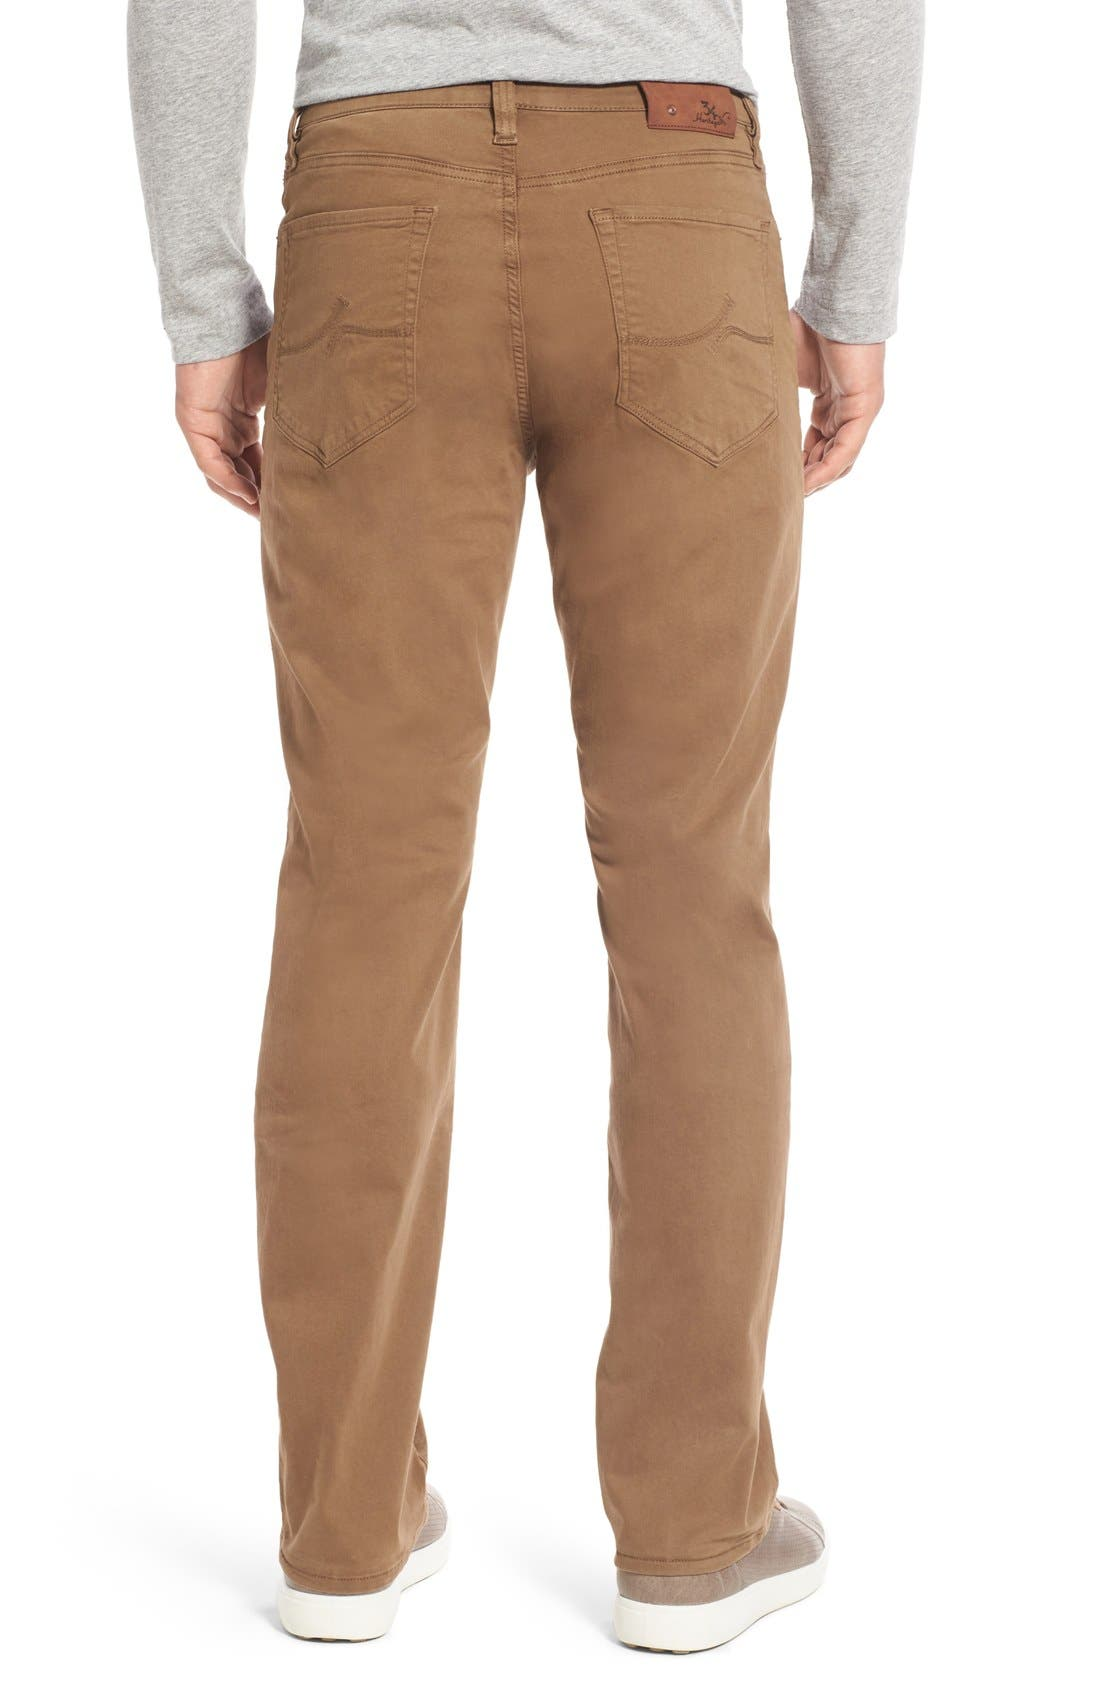 Alternate Image 2  - 34 Heritage 'Charisma' Relaxed Fit Jeans (Tobacco Twill) (Online Only)